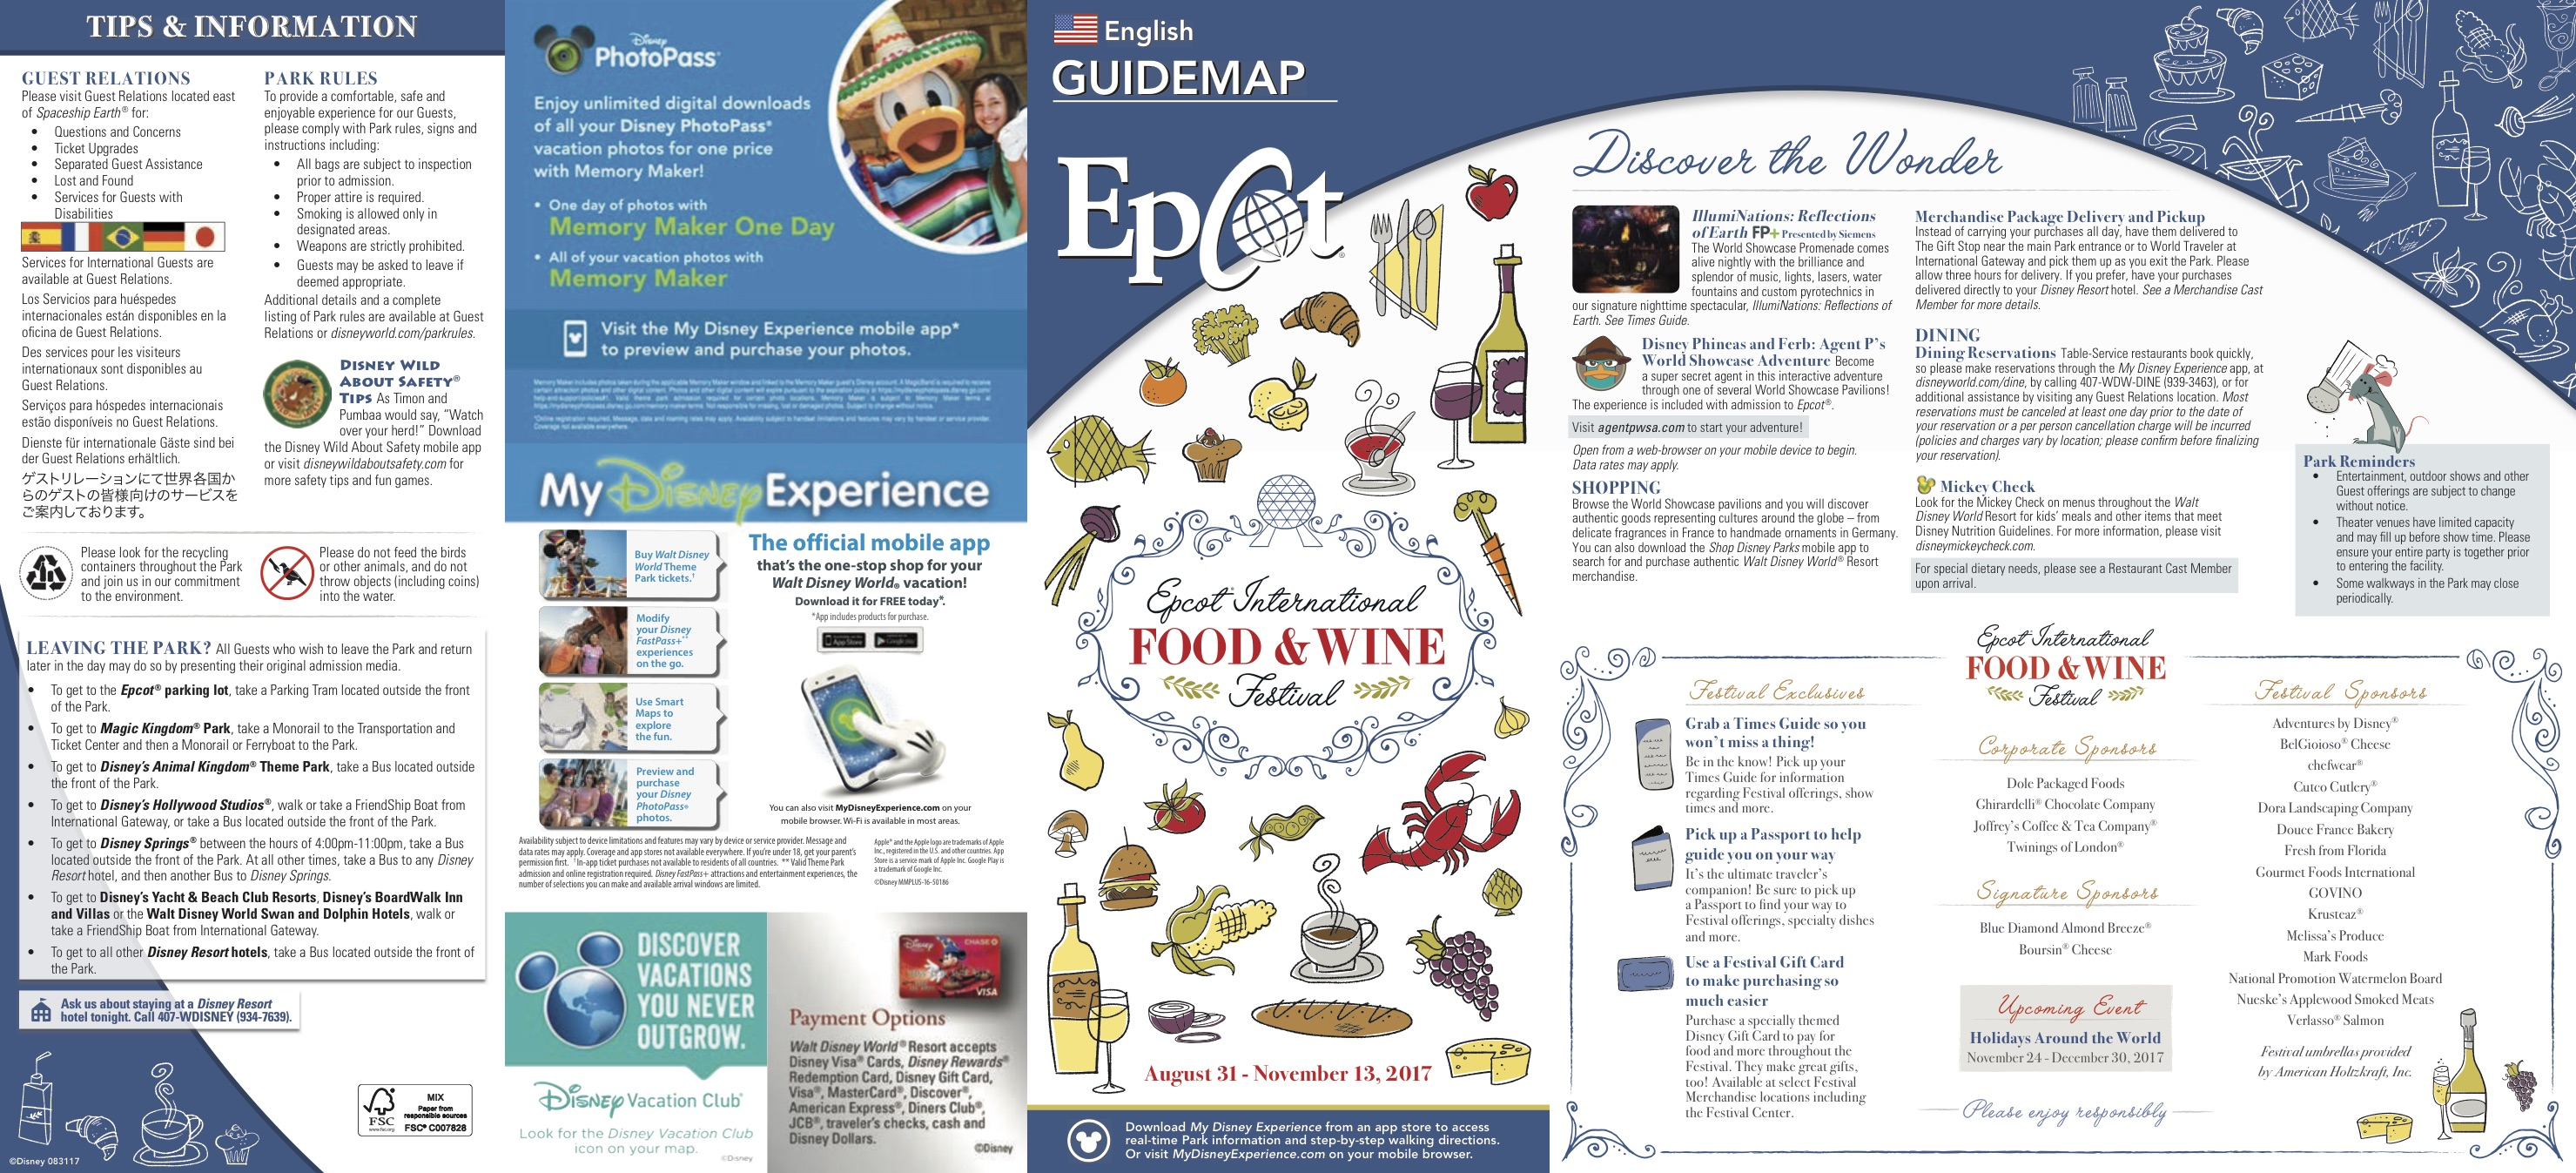 Epcot Food and Wine Festival 2017 - Epcot Food and Wine Map - Side One